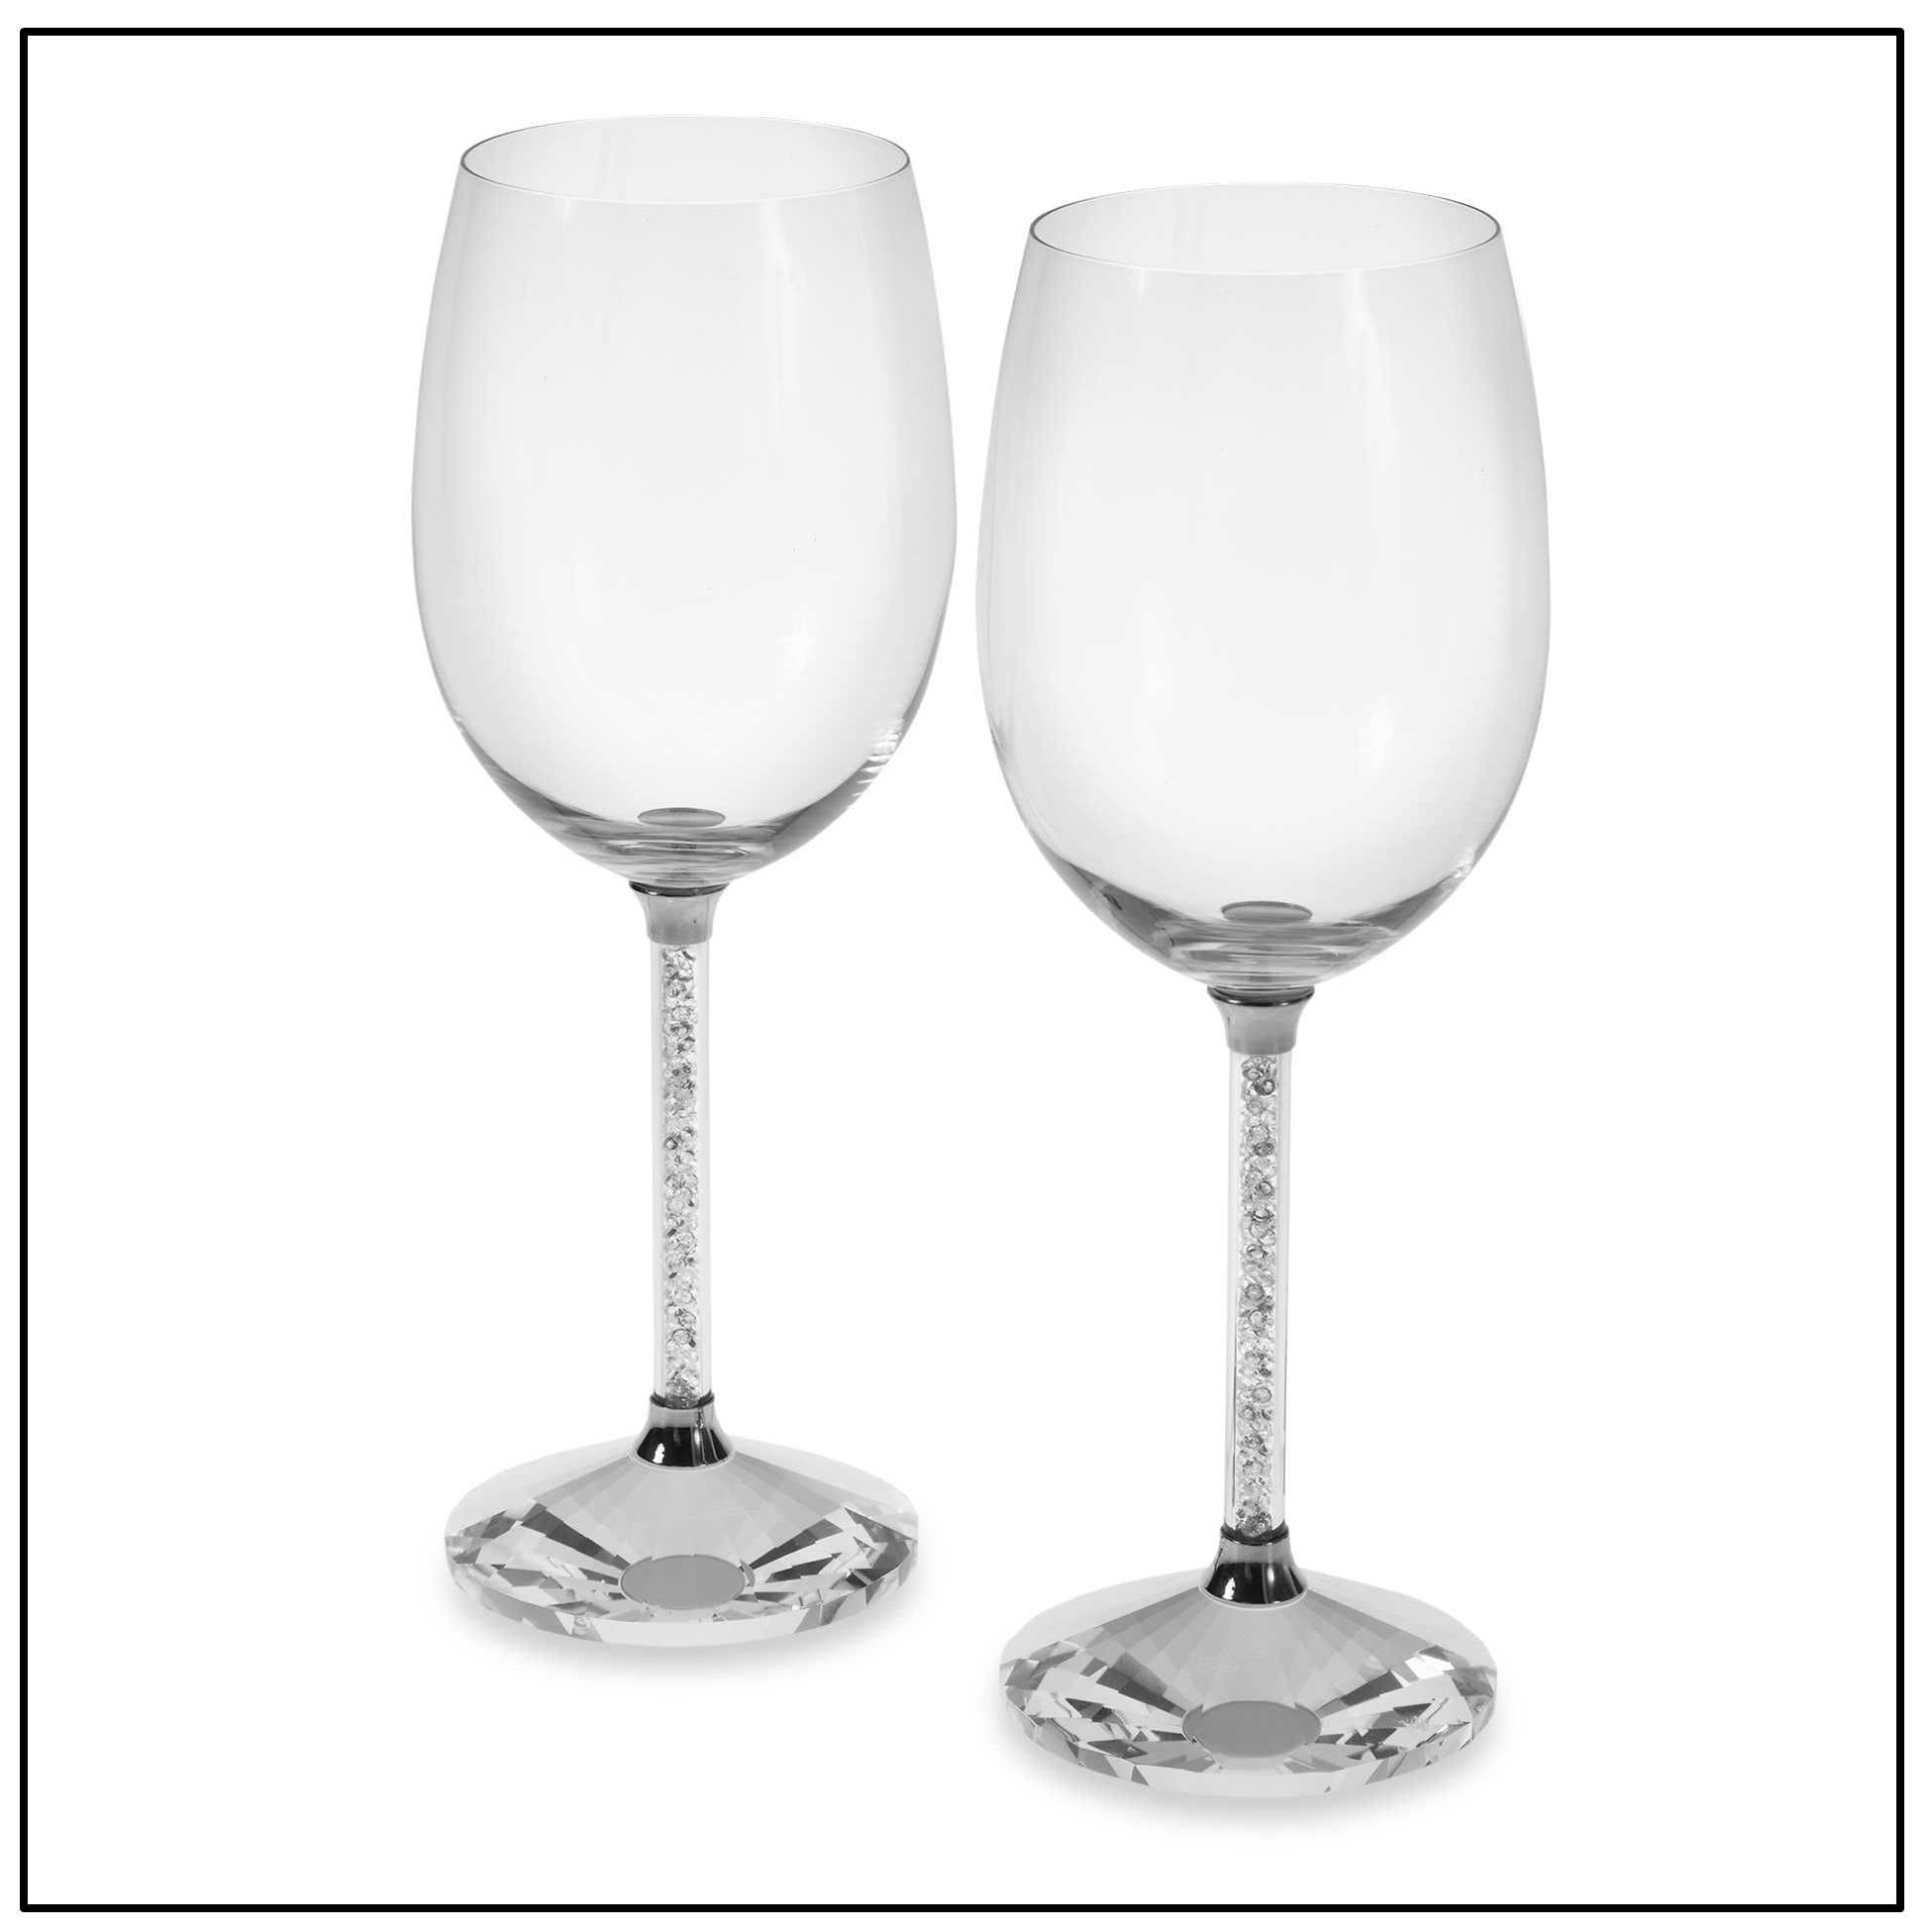 Goblet Pair with Crystal Cut Stem